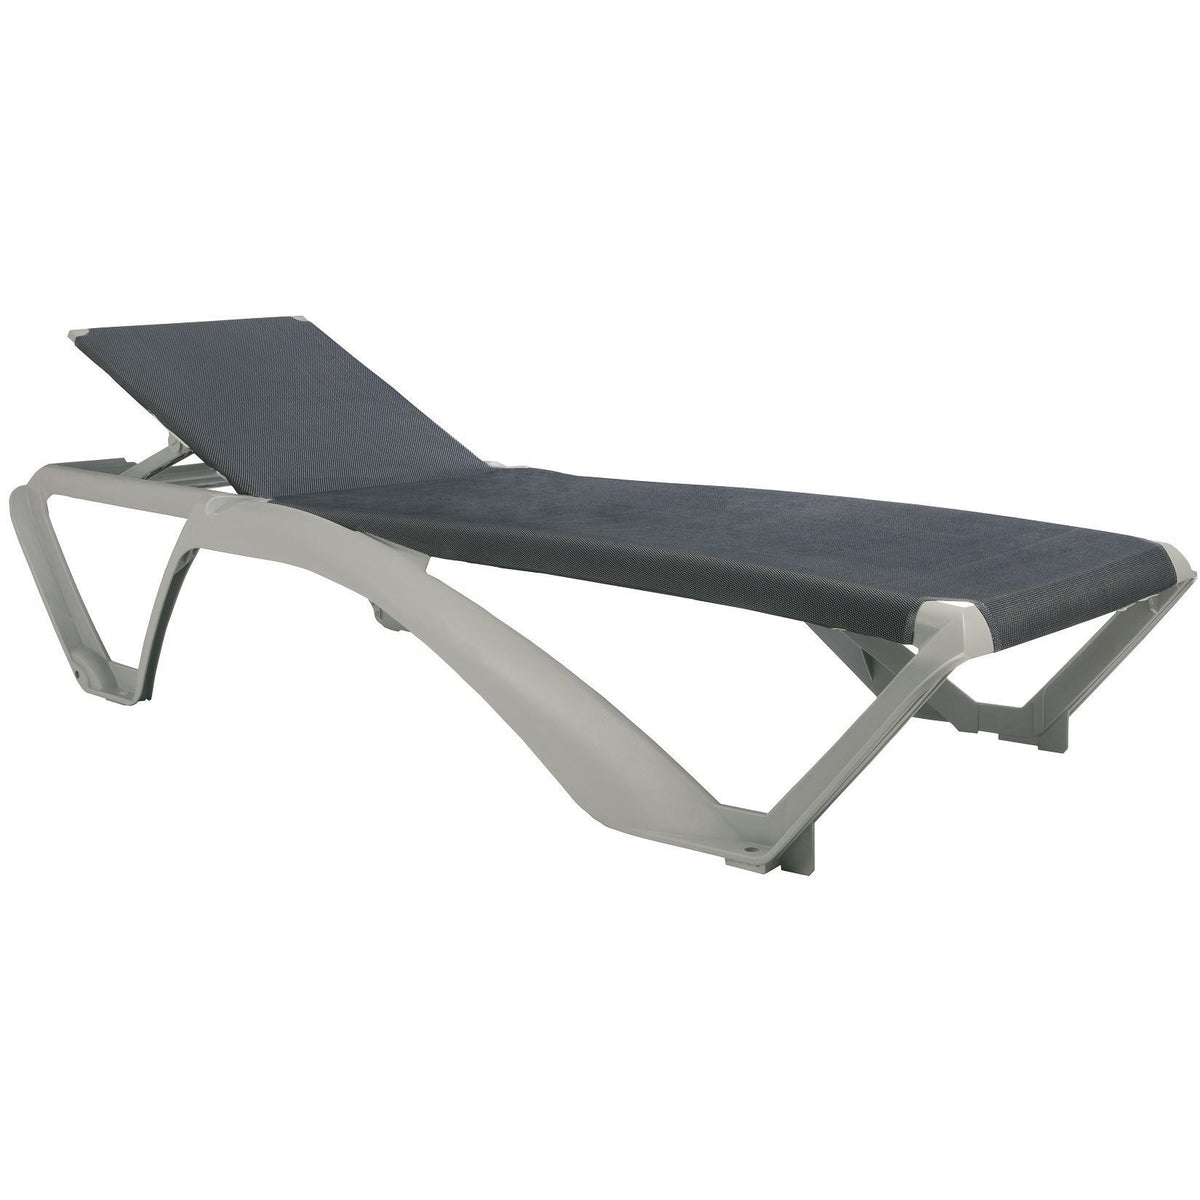 Resol Marina Sun Lounger - Silver Frame with Blue Jeans Canvas Material